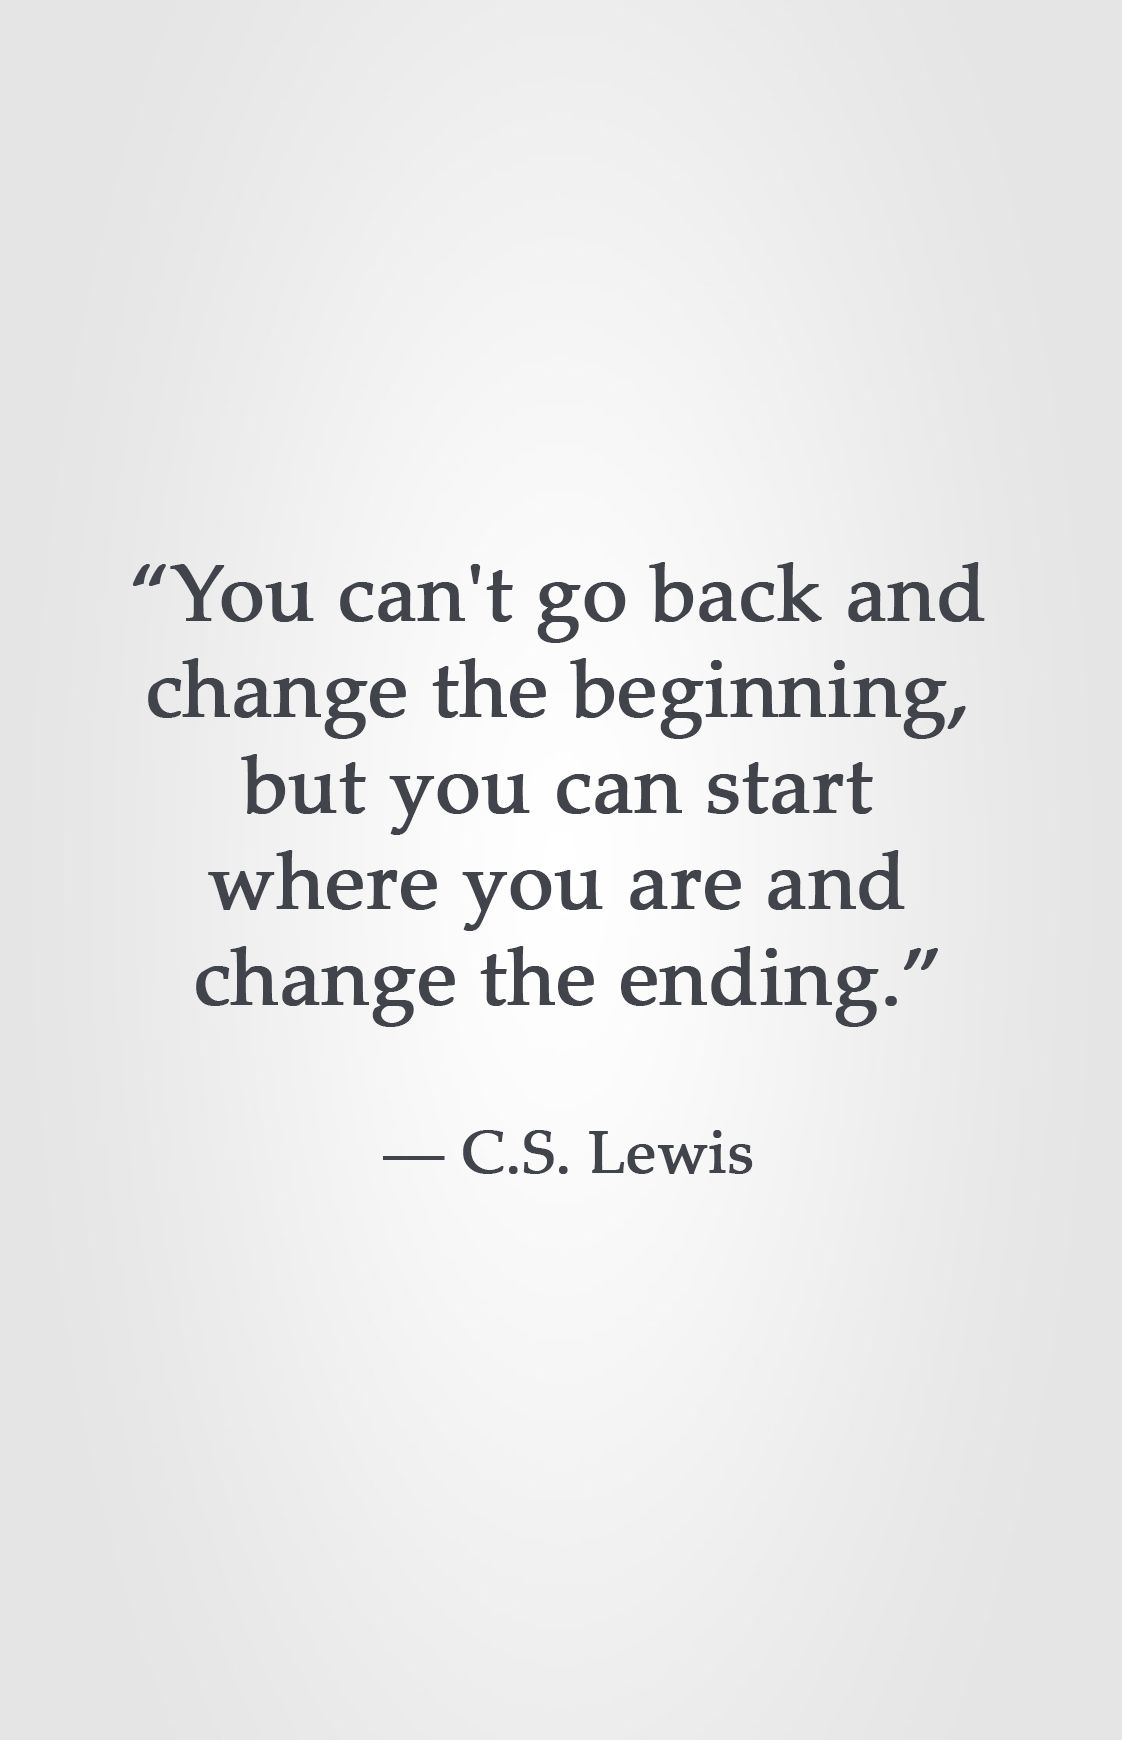 Quotes About Change Extraordinary You Can't Go Back And Change The Beginning But You Can Start Where